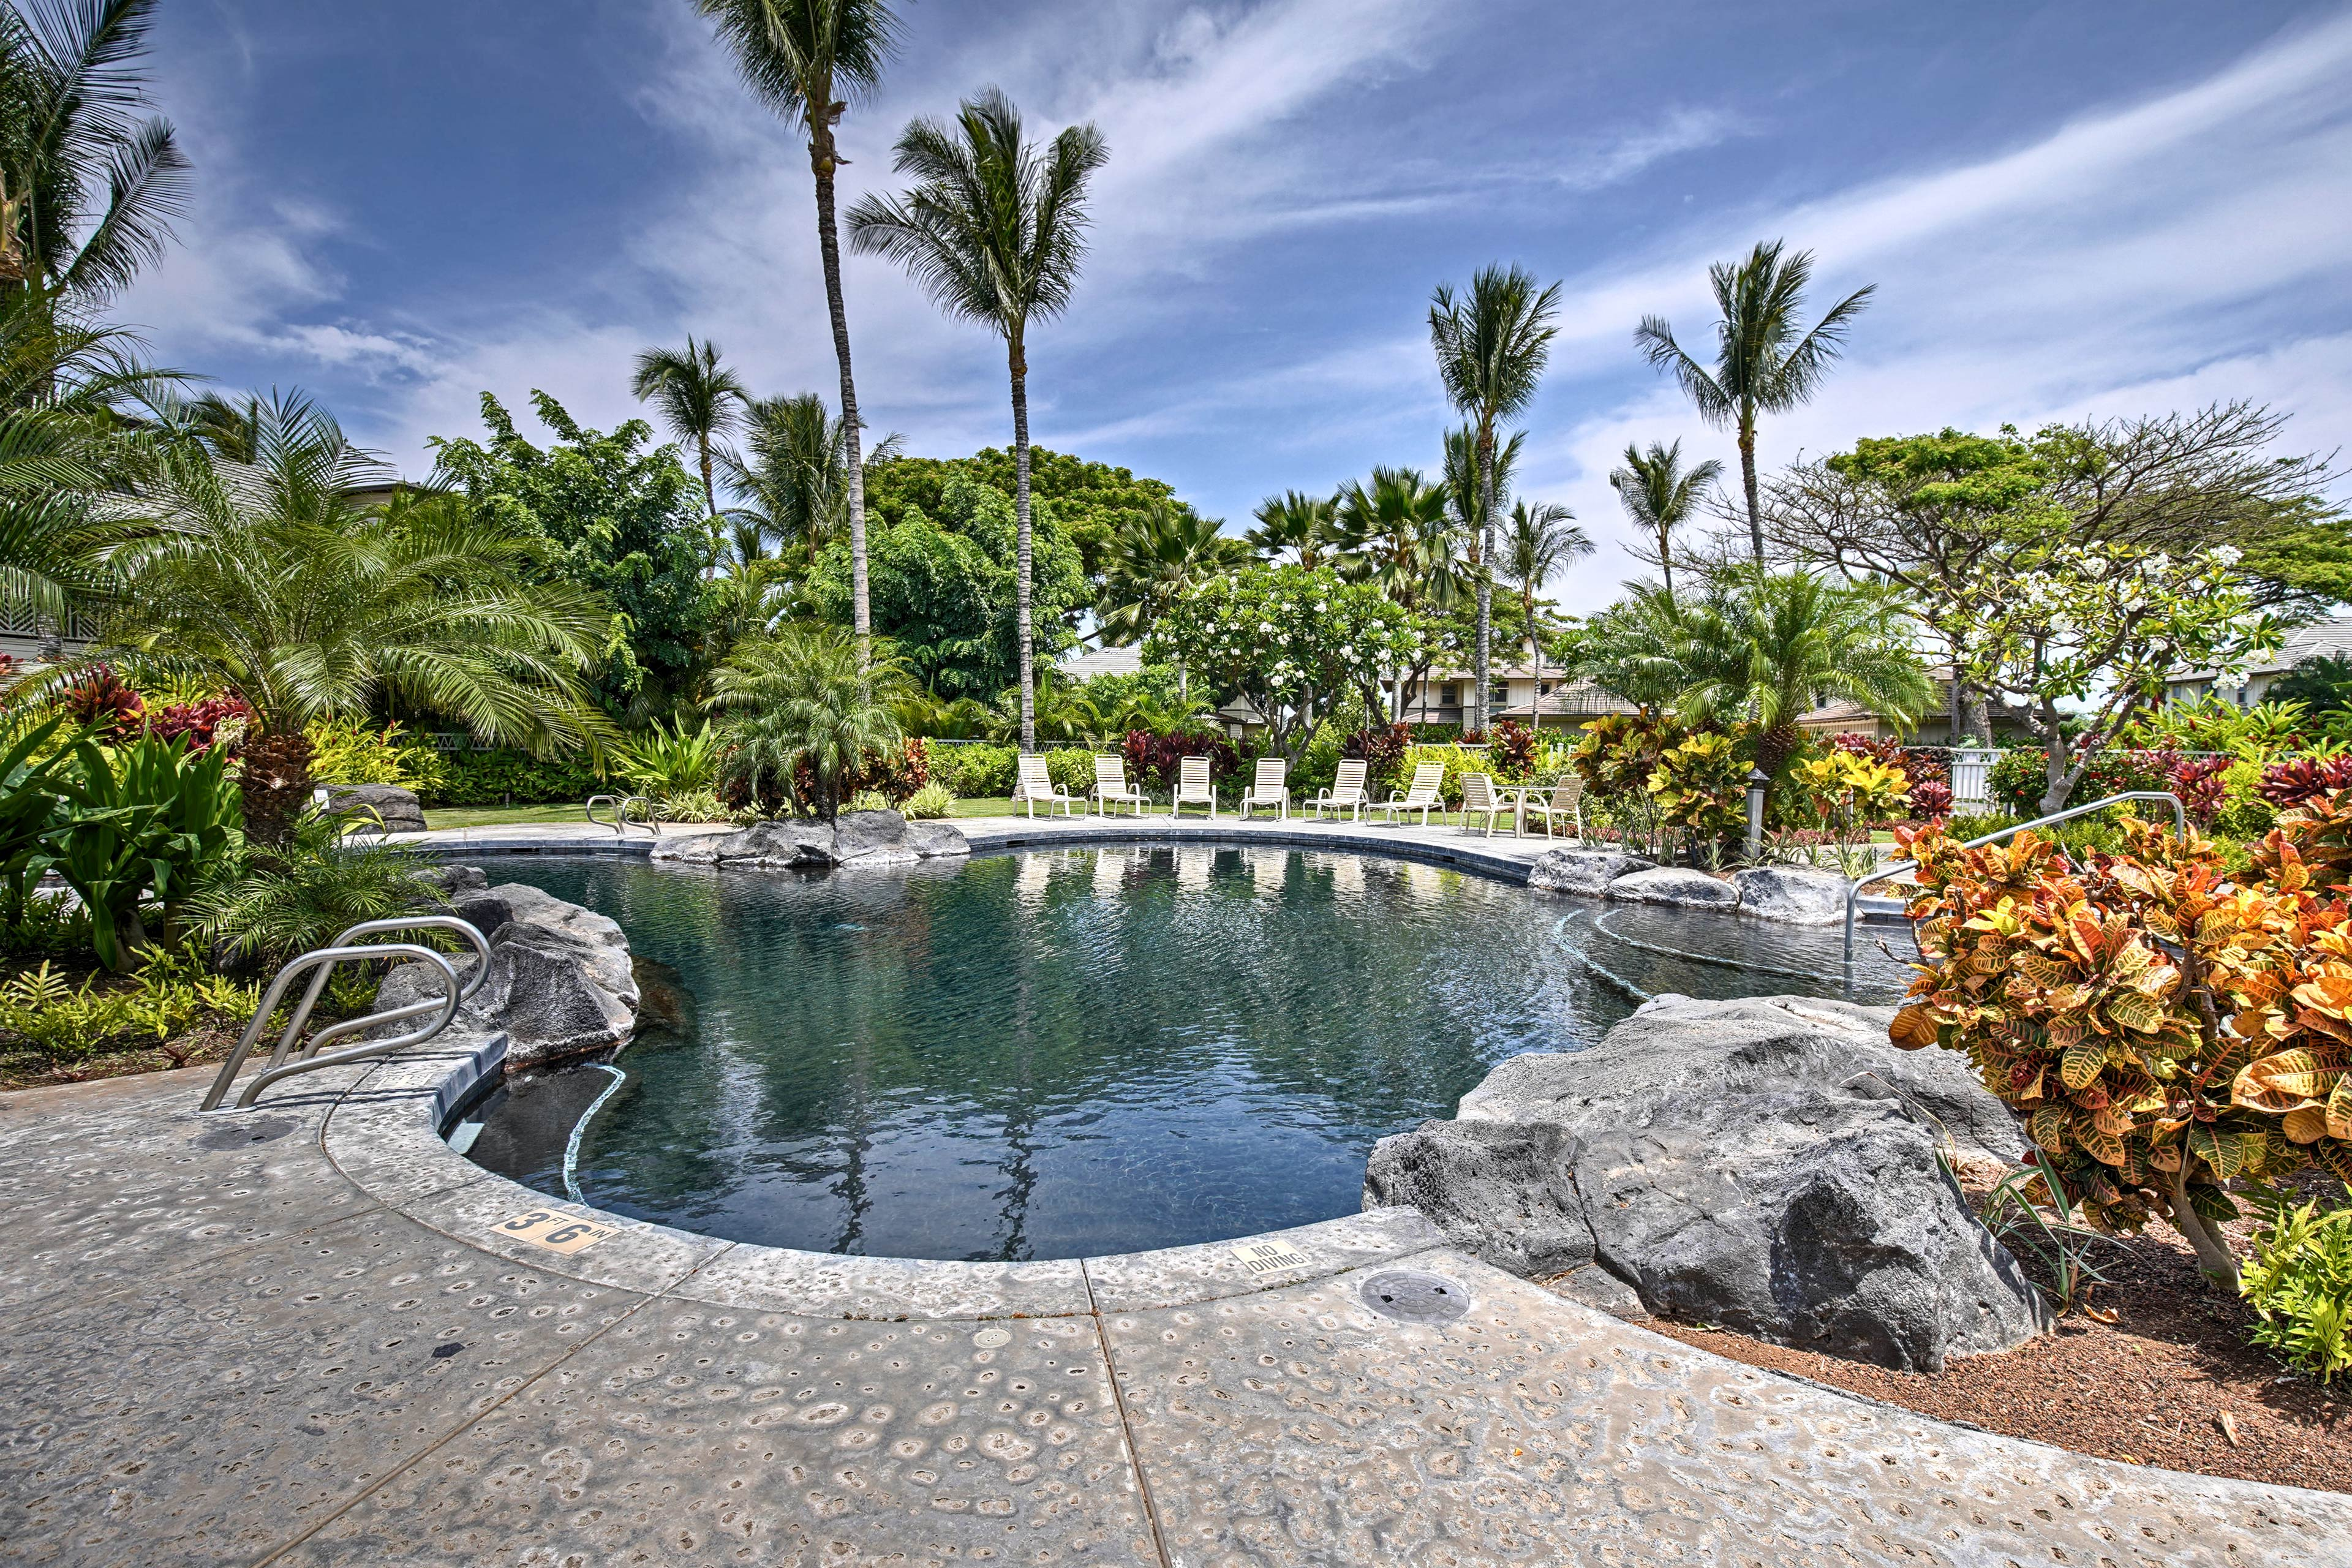 Pack your bathing suit and head to Waimea to stay at this vacation rental condo!